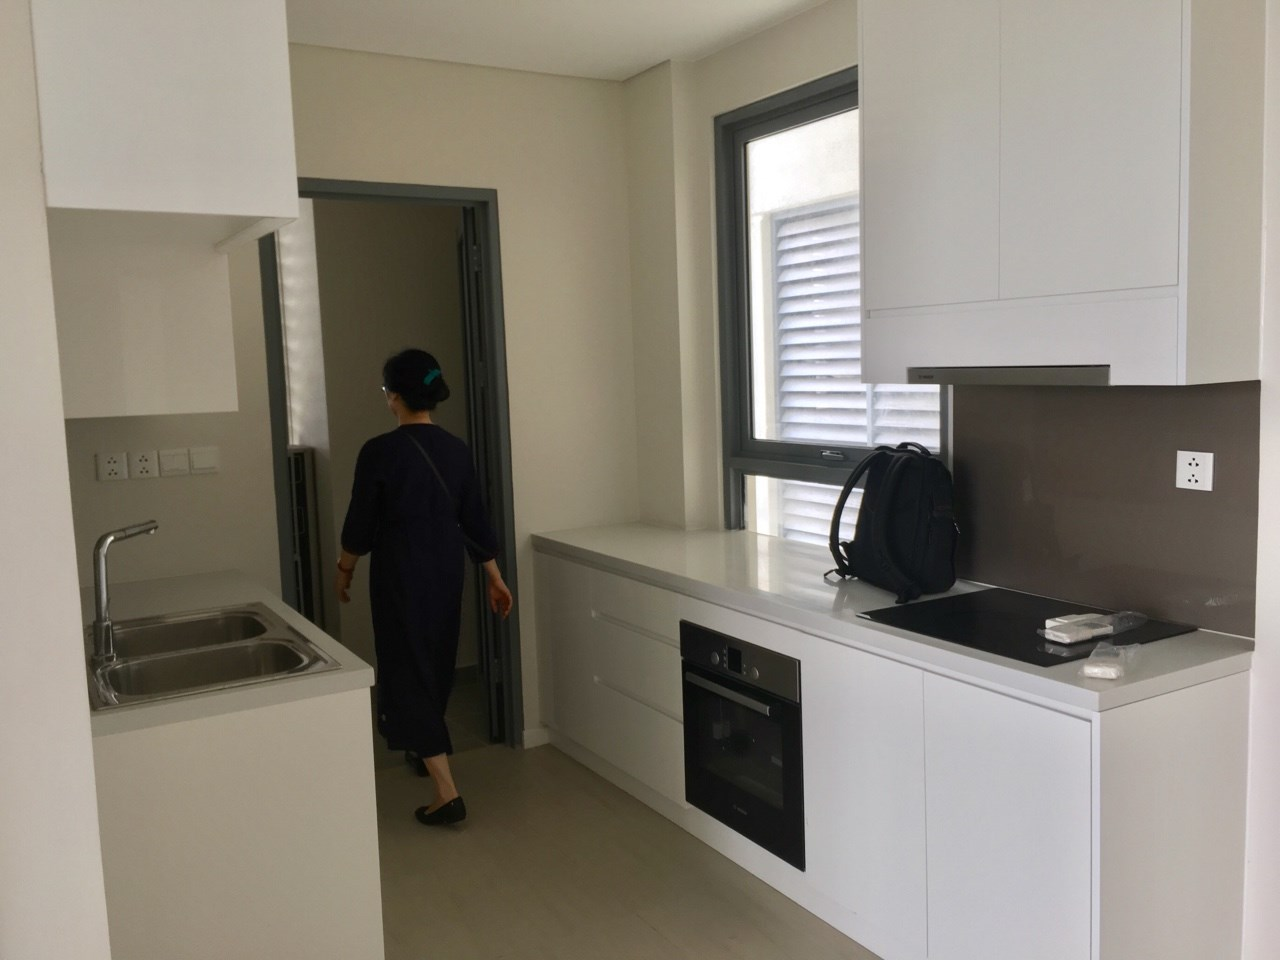 DI0146 - Diamond Island Apartment For Rent & Sale in Ho Chi Minh City - 3 bedroom